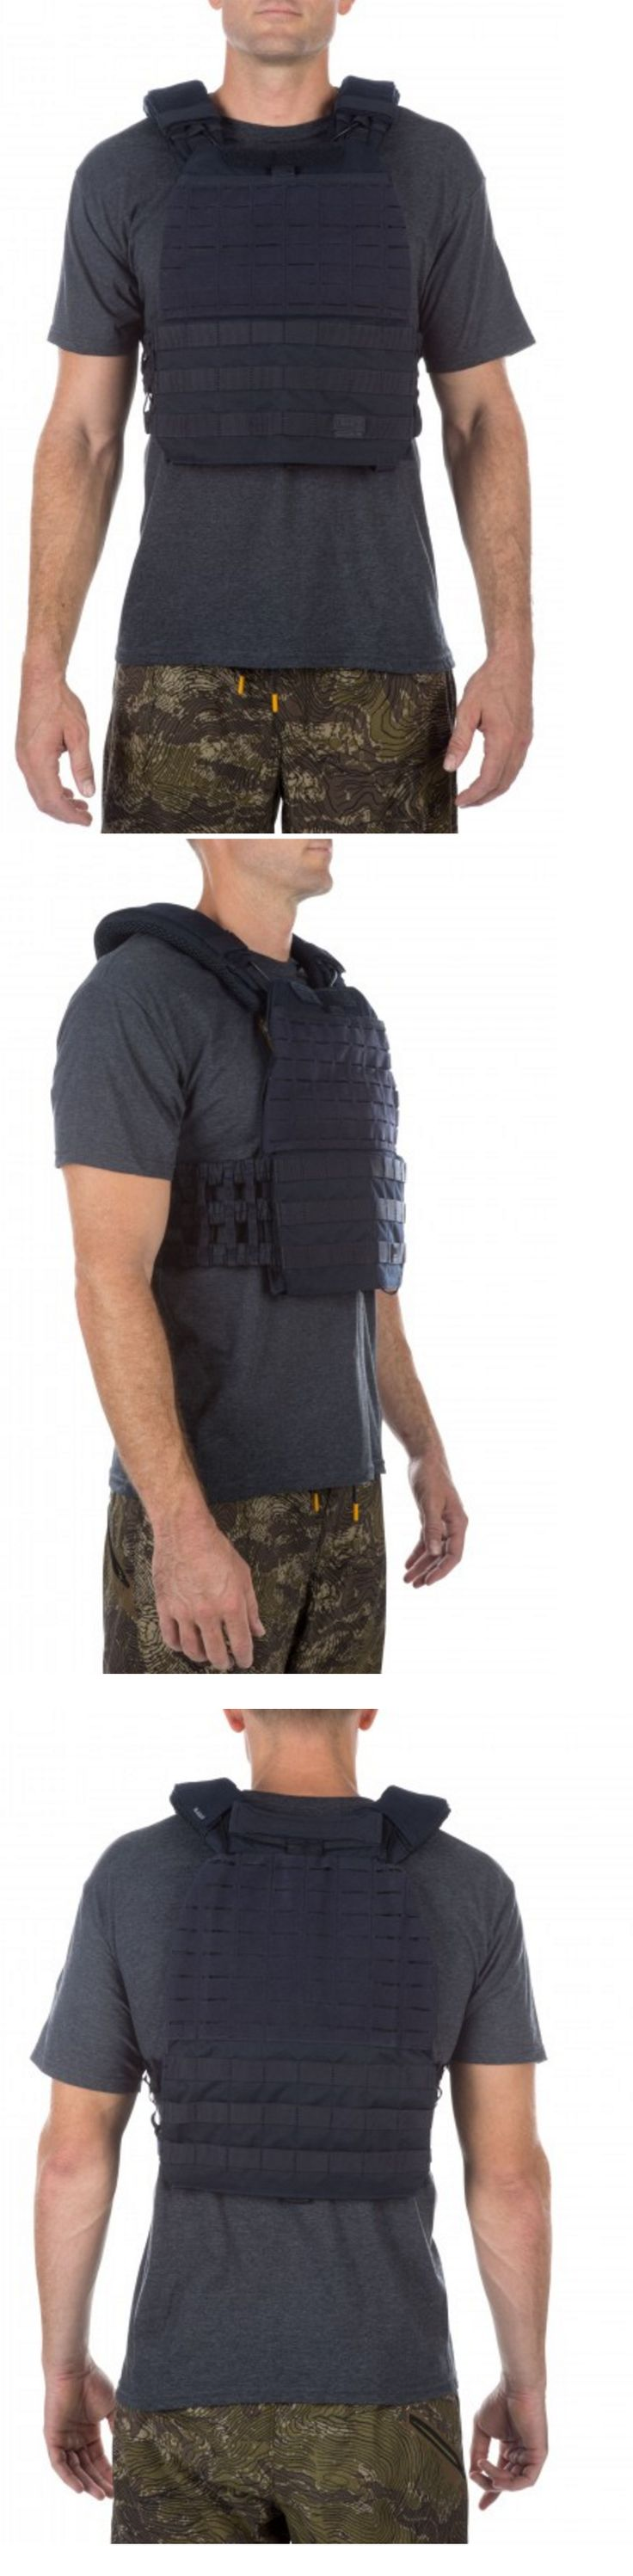 Chest Rigs and Tactical Vests 177891: 5.11 Tactical Tactec™ Plate Carrier Dark Navy Crossfit Airsoft Swat Police Vest -> BUY IT NOW ONLY: $180.49 on eBay!